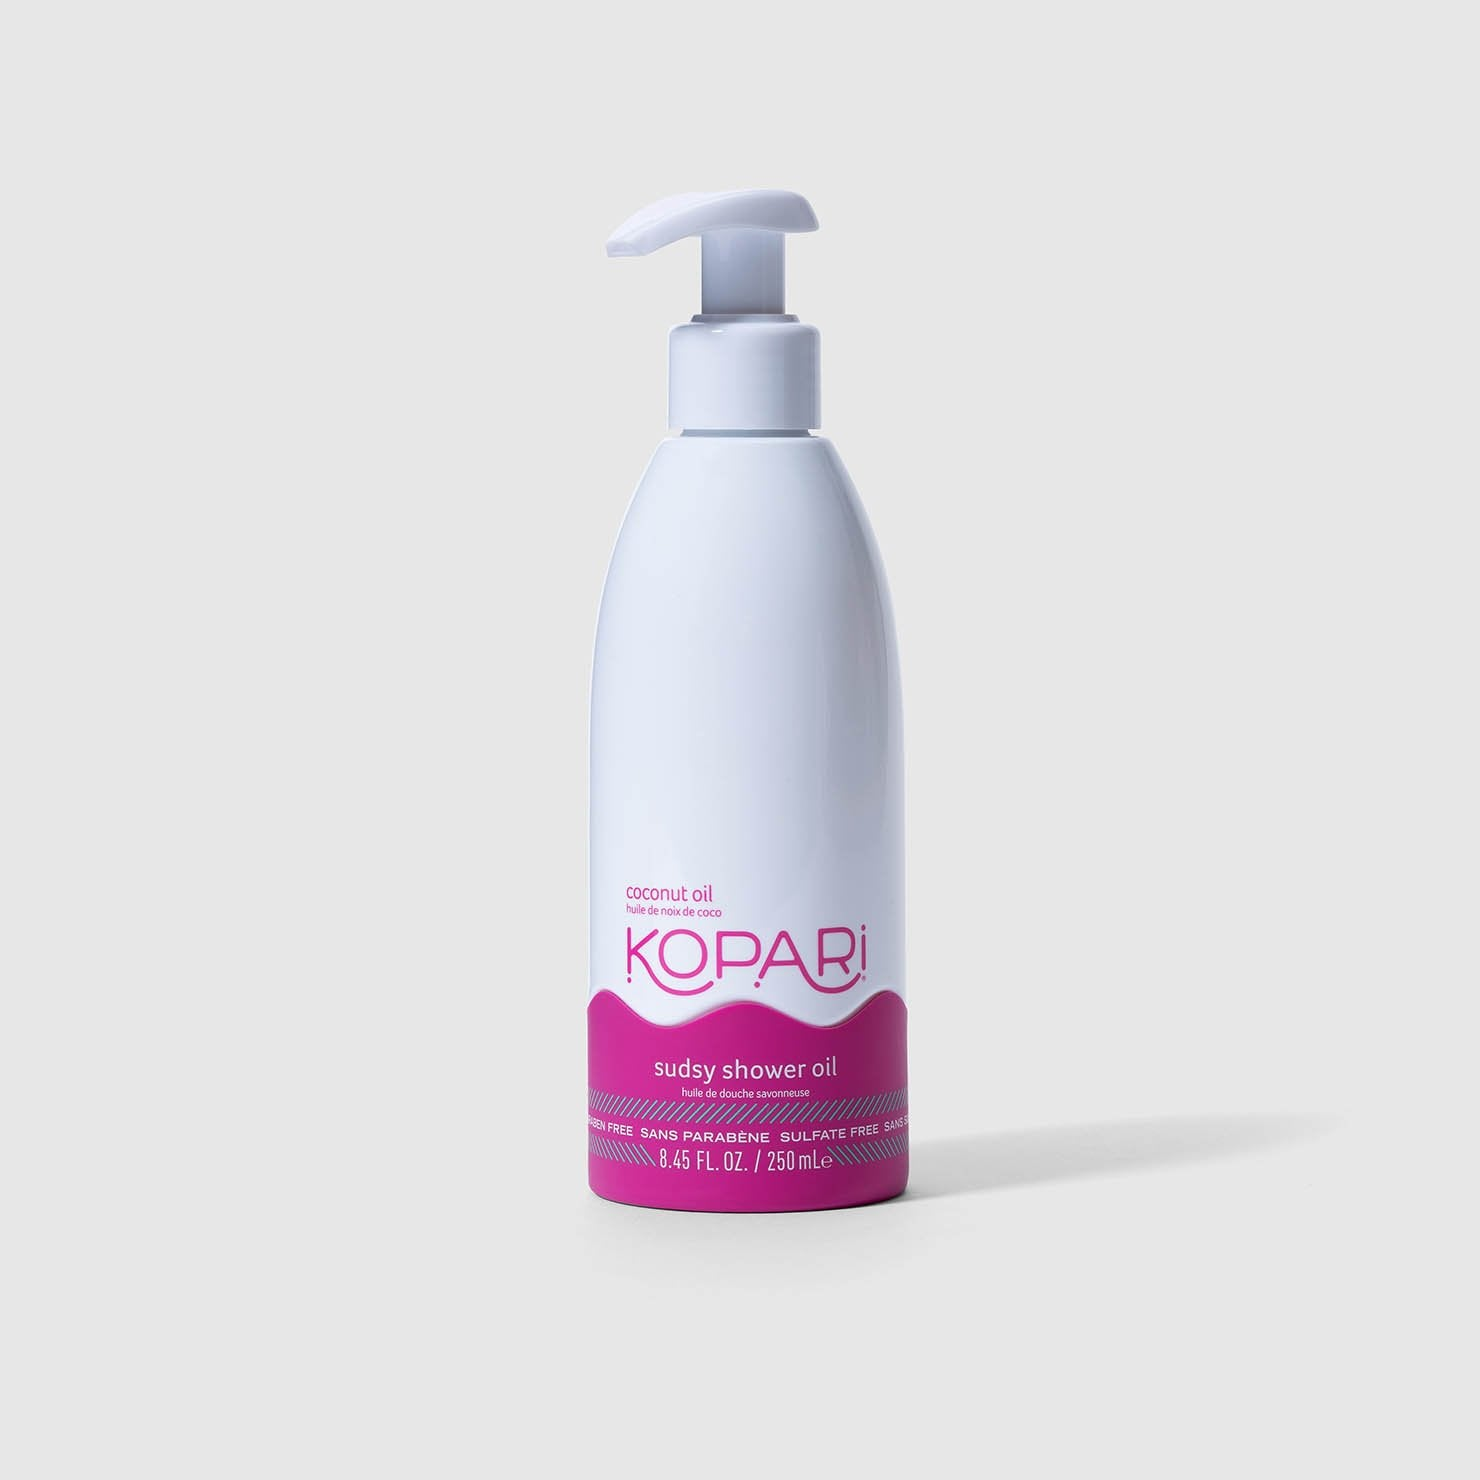 KOPARI - Sudsy Shower Oil